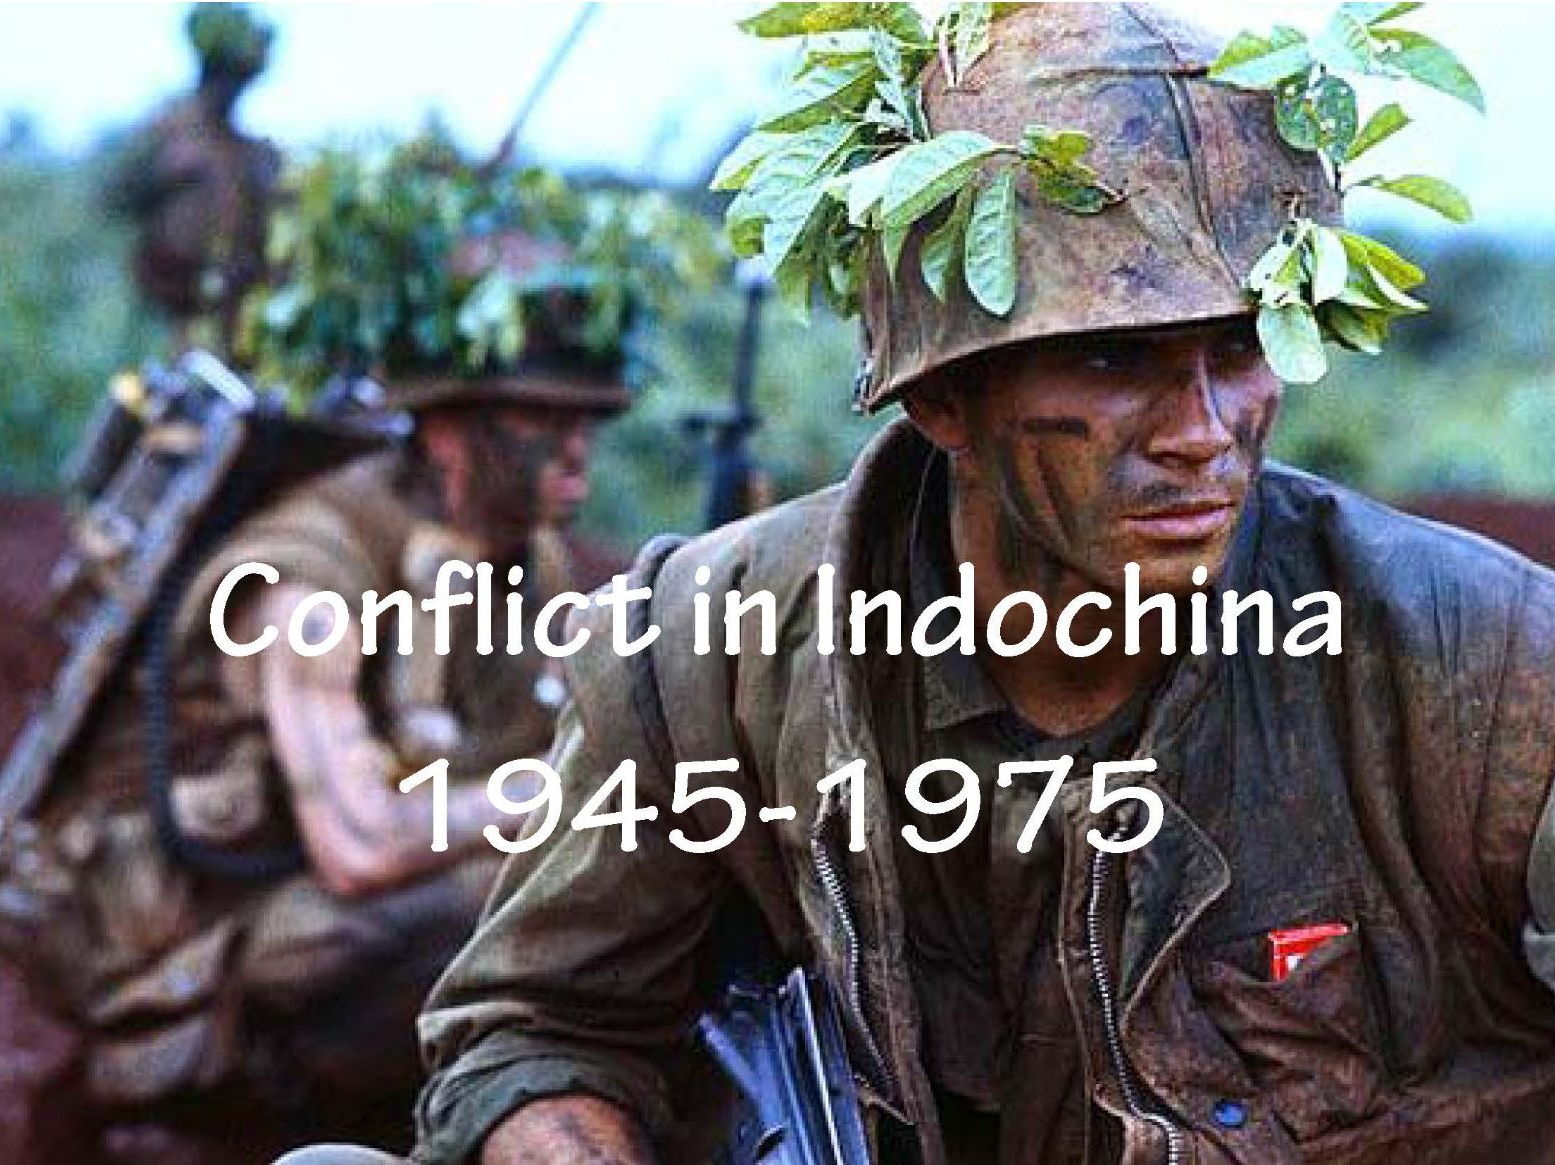 Conflict in Indochina 1945-1975